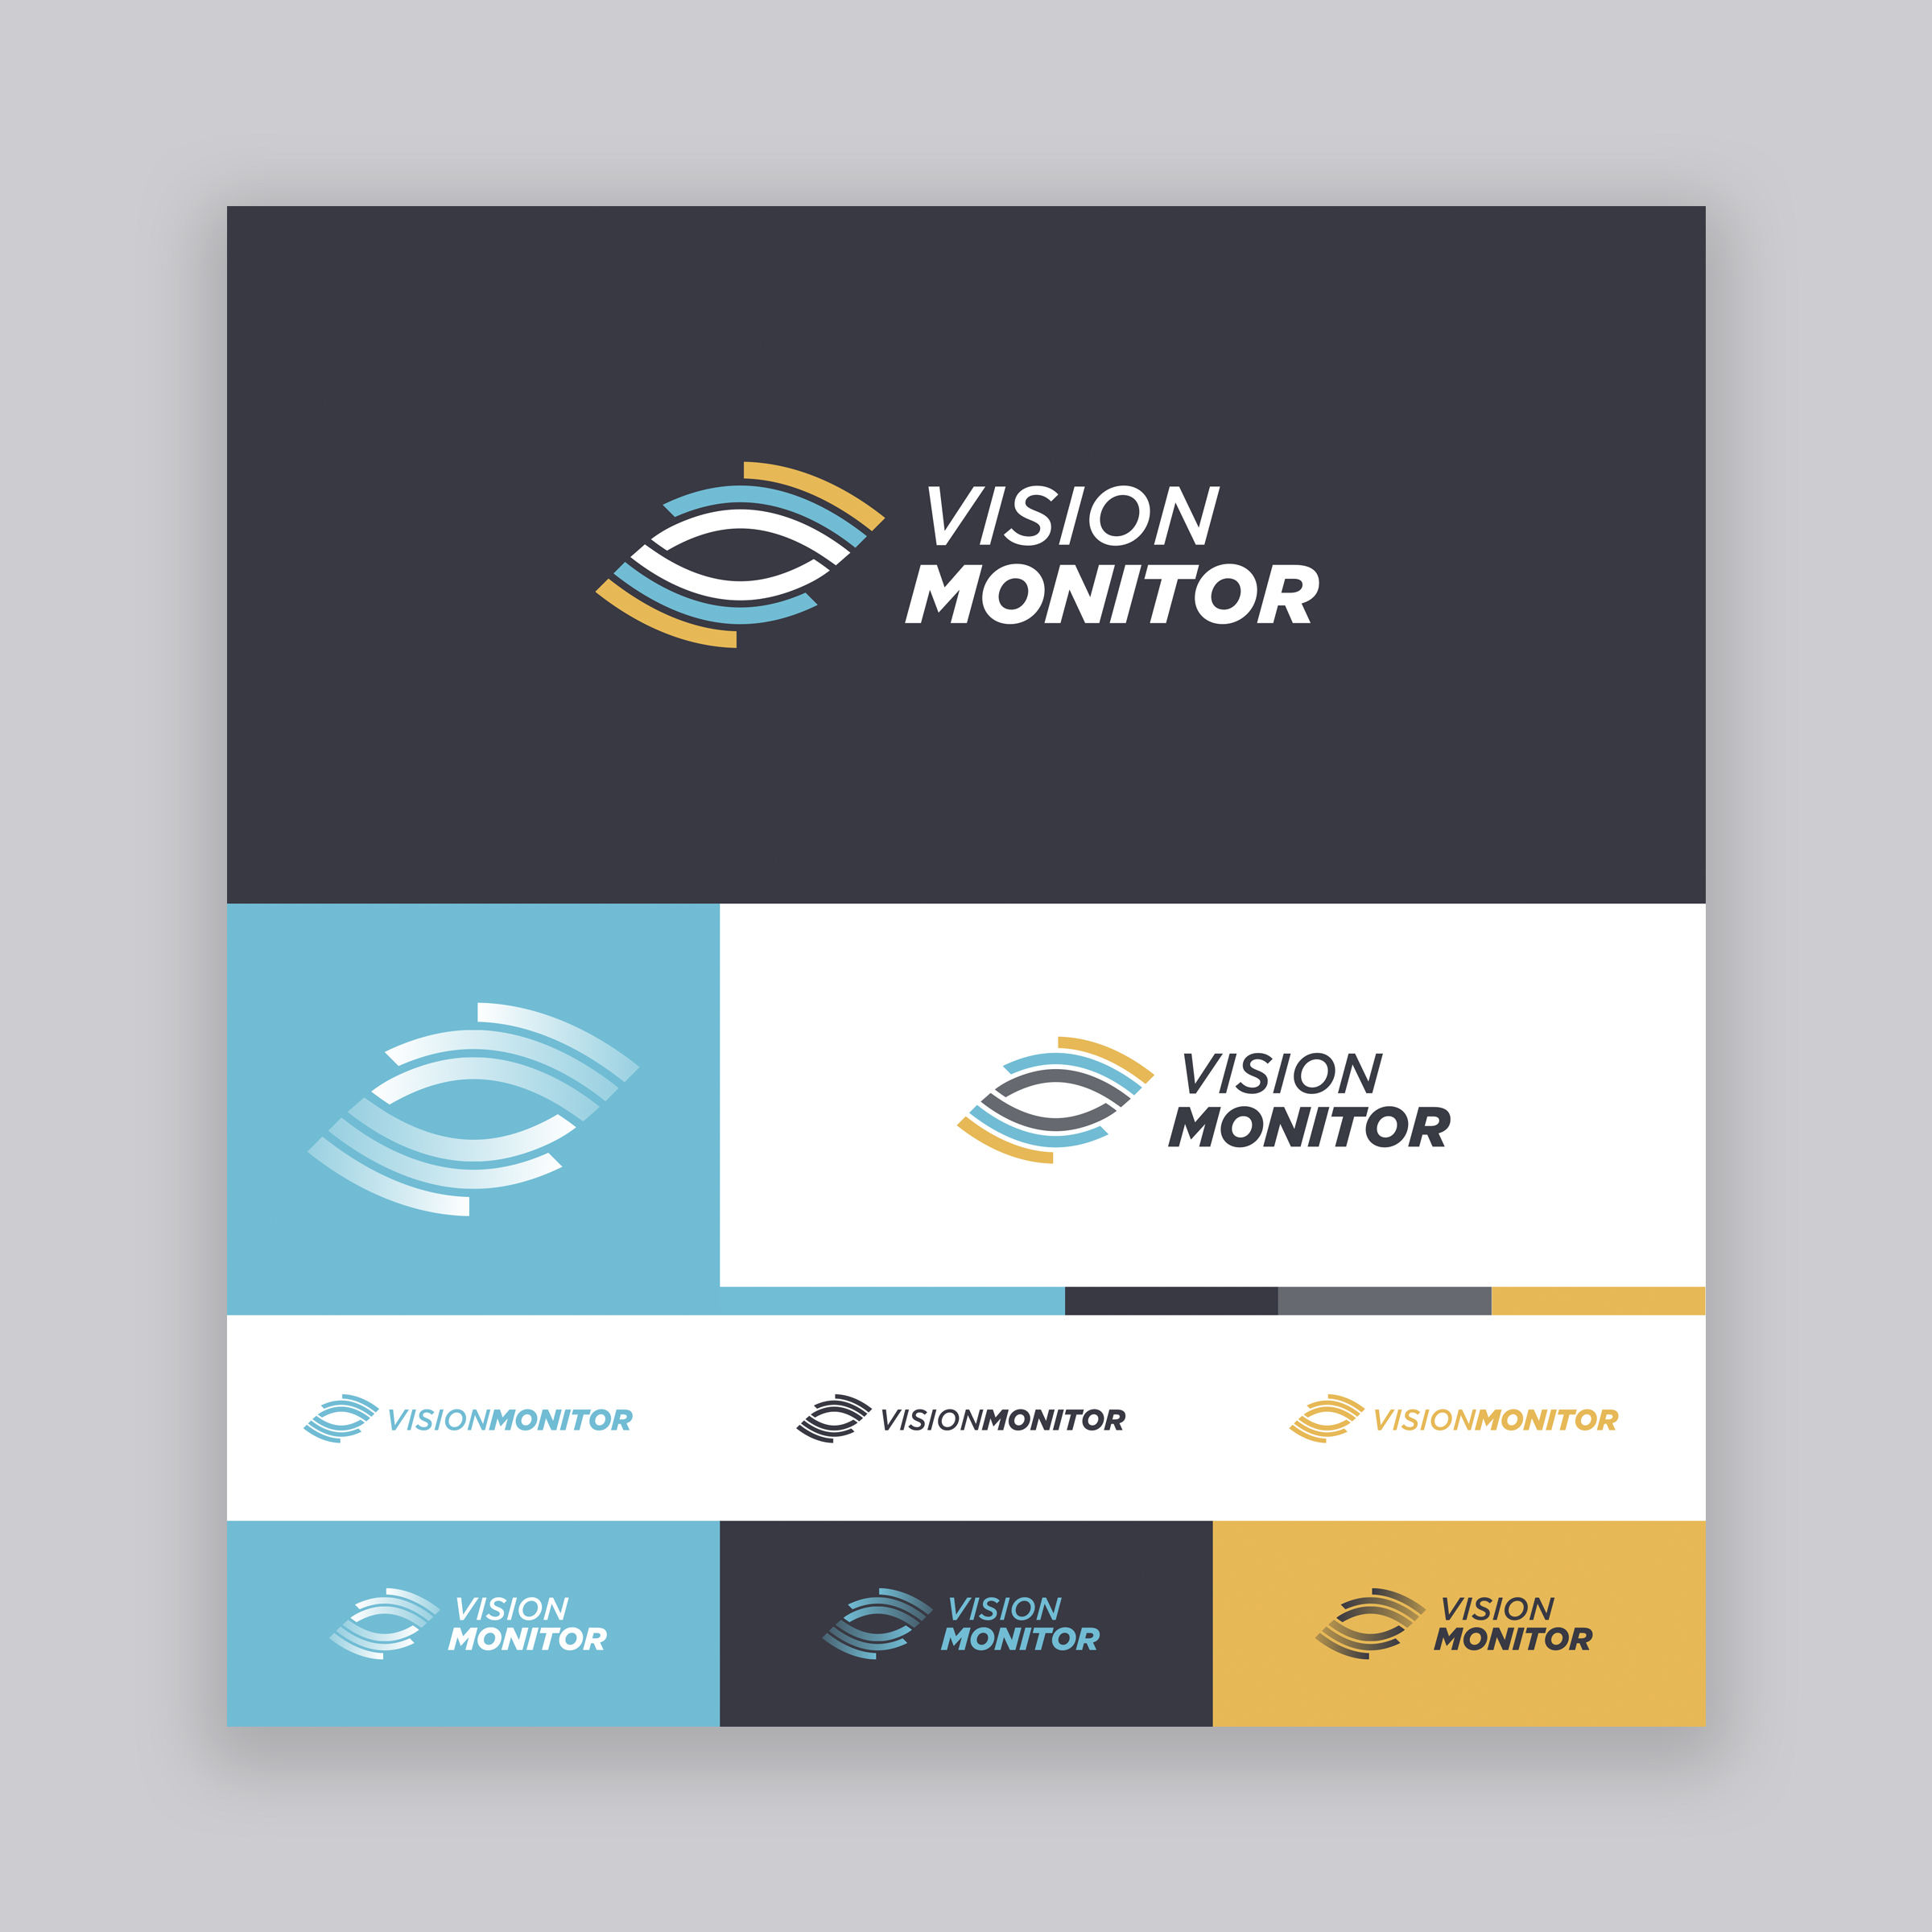 Vision Monitor Logo - Option 3.jpg